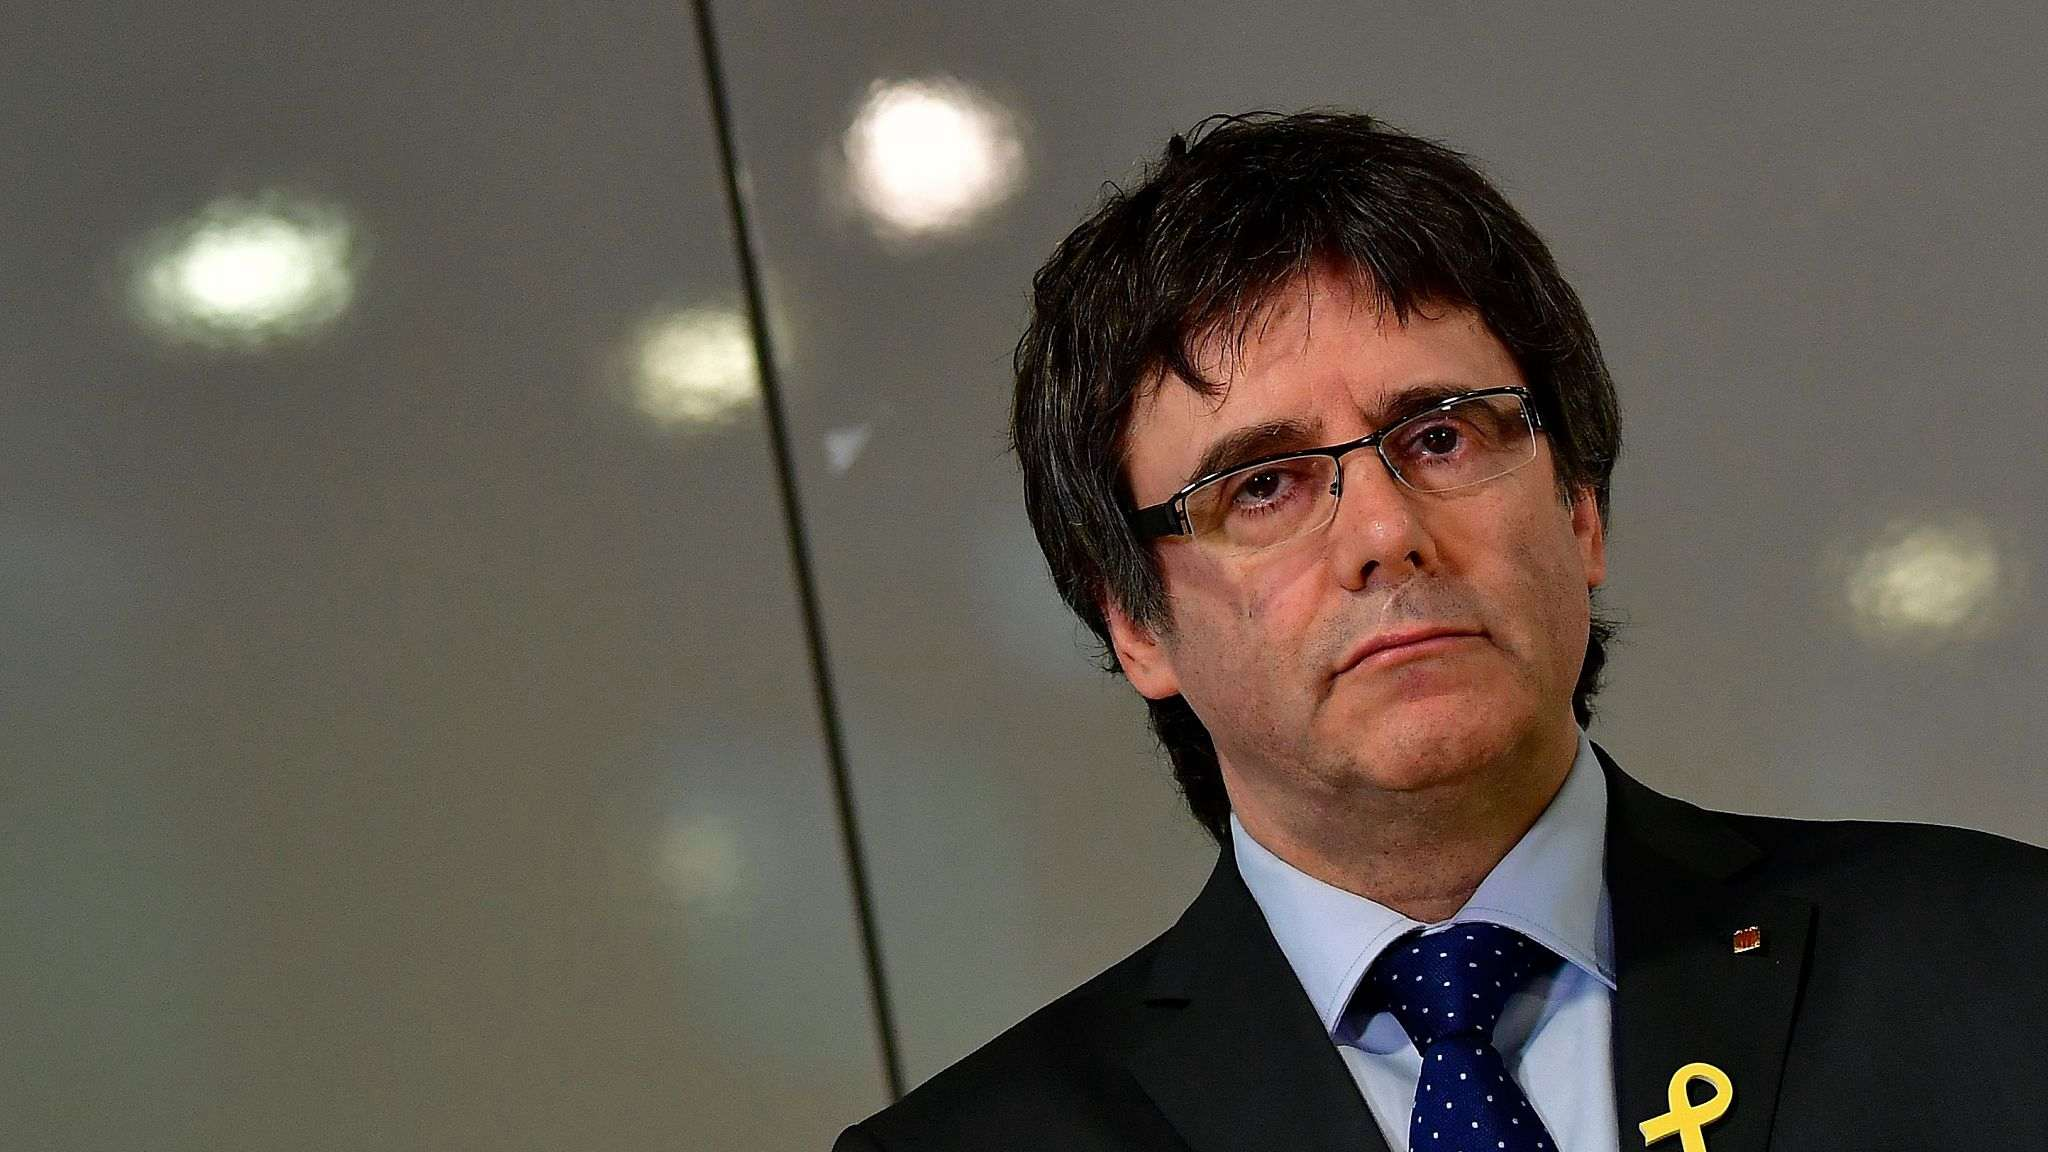 German court OKs extradition of Puigdemont for alleged corruption